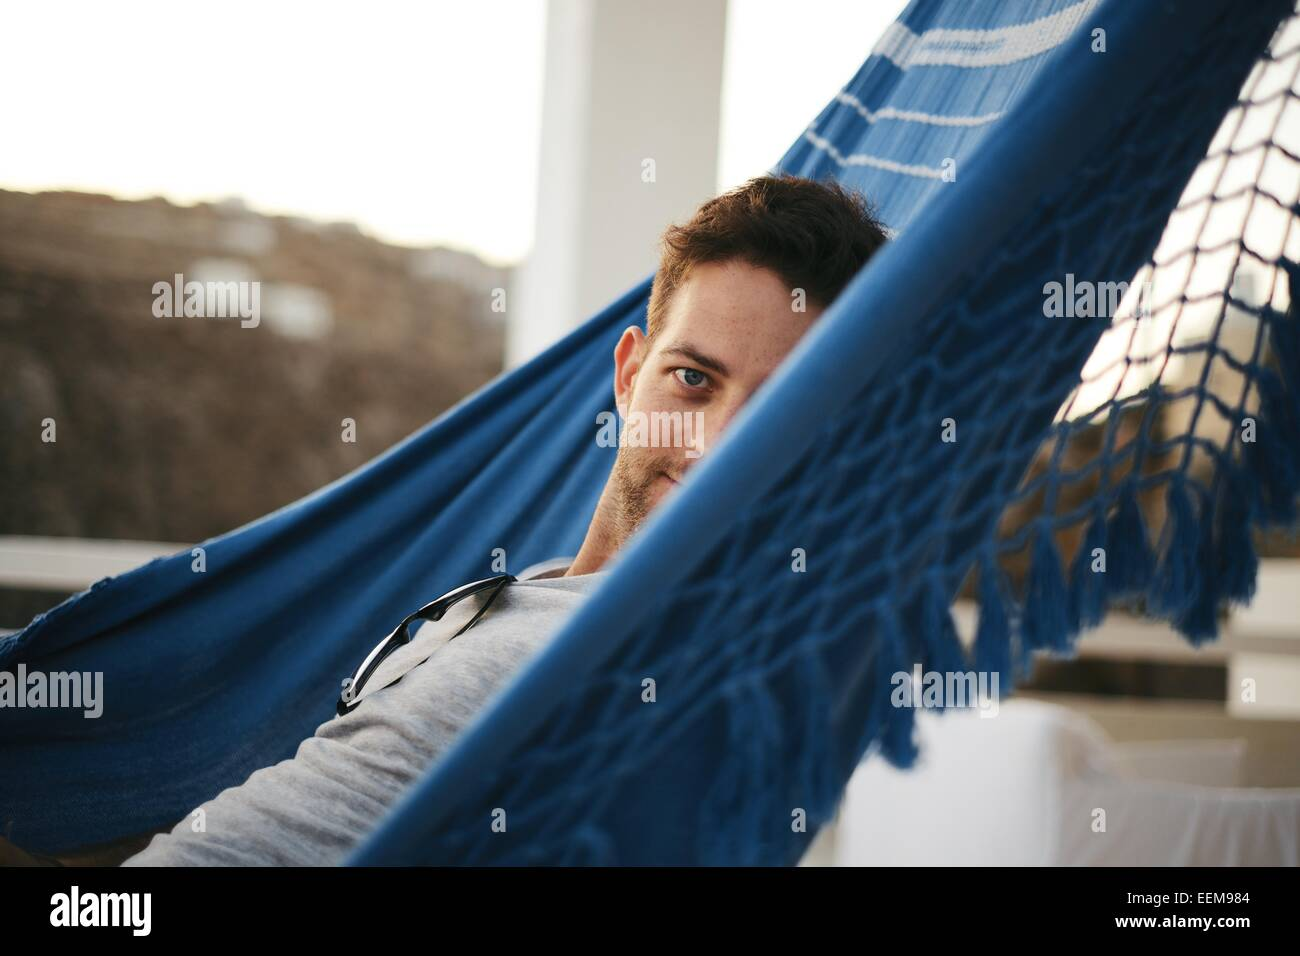 Man laying in hammock and looking at camera Photo Stock